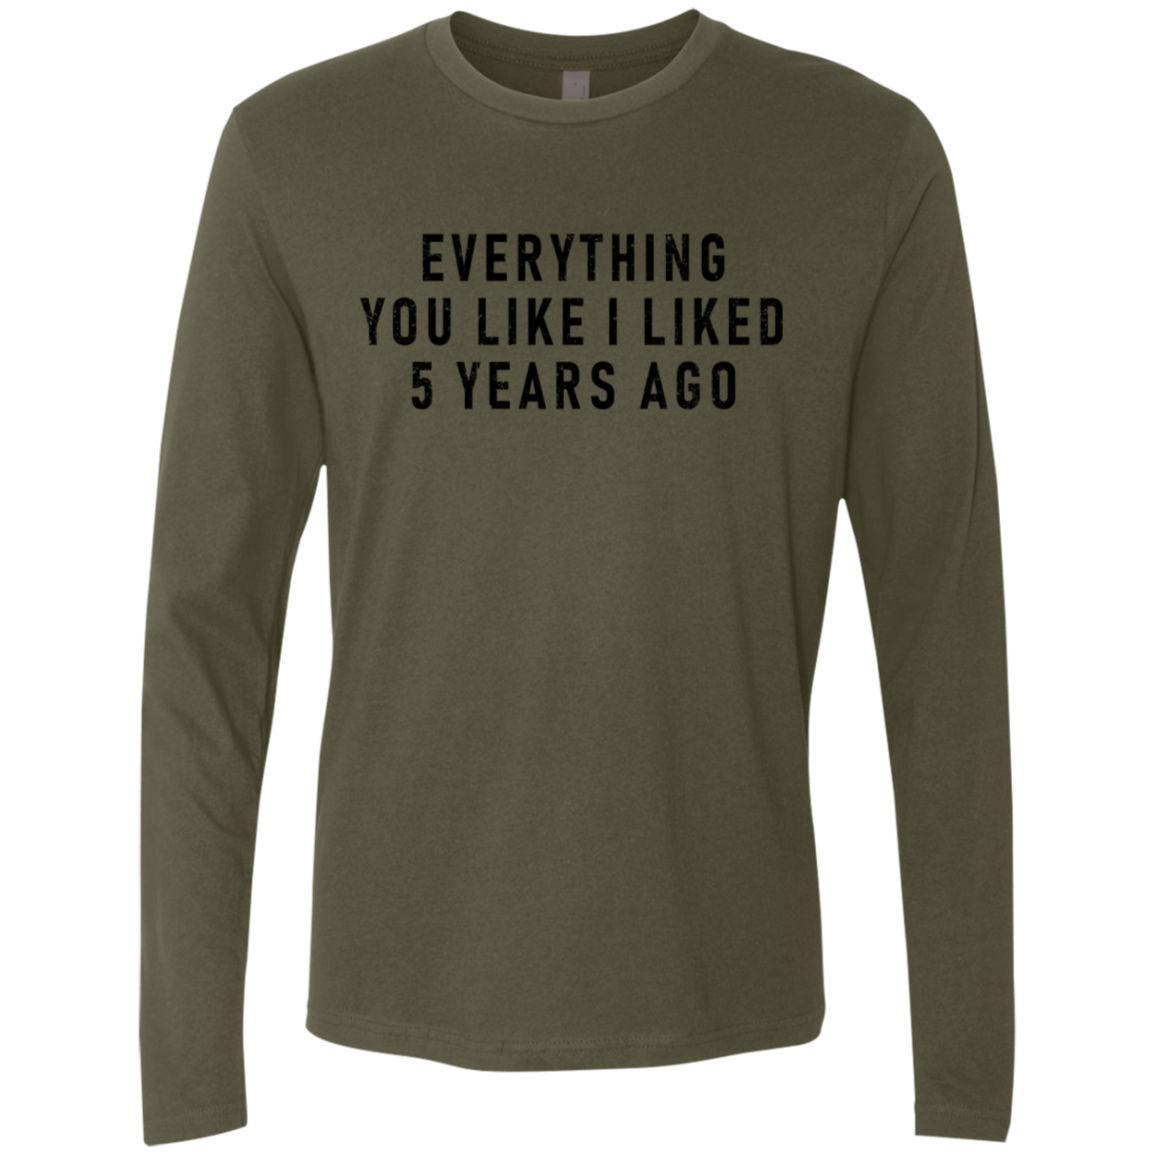 Everything You Like I Liked 5 Years Ago Men's Long Sleeve Tee